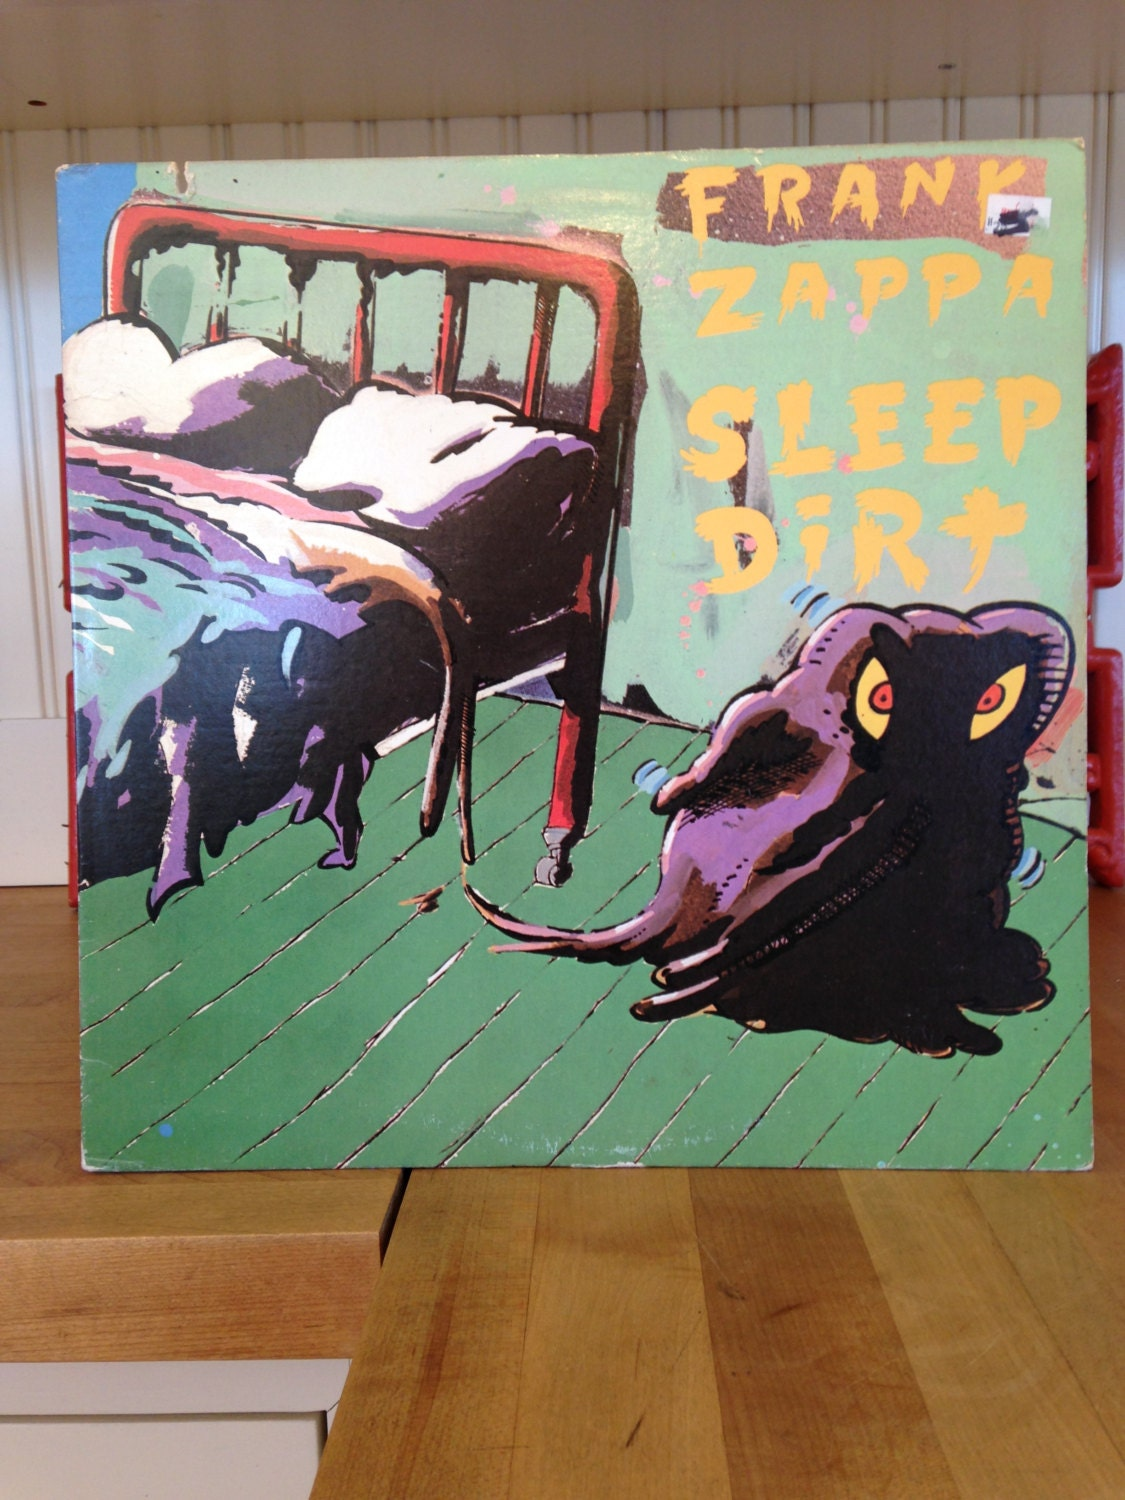 Frank Zappa Sleep Dirt Record Dsk 2292 Nice Clean Copy